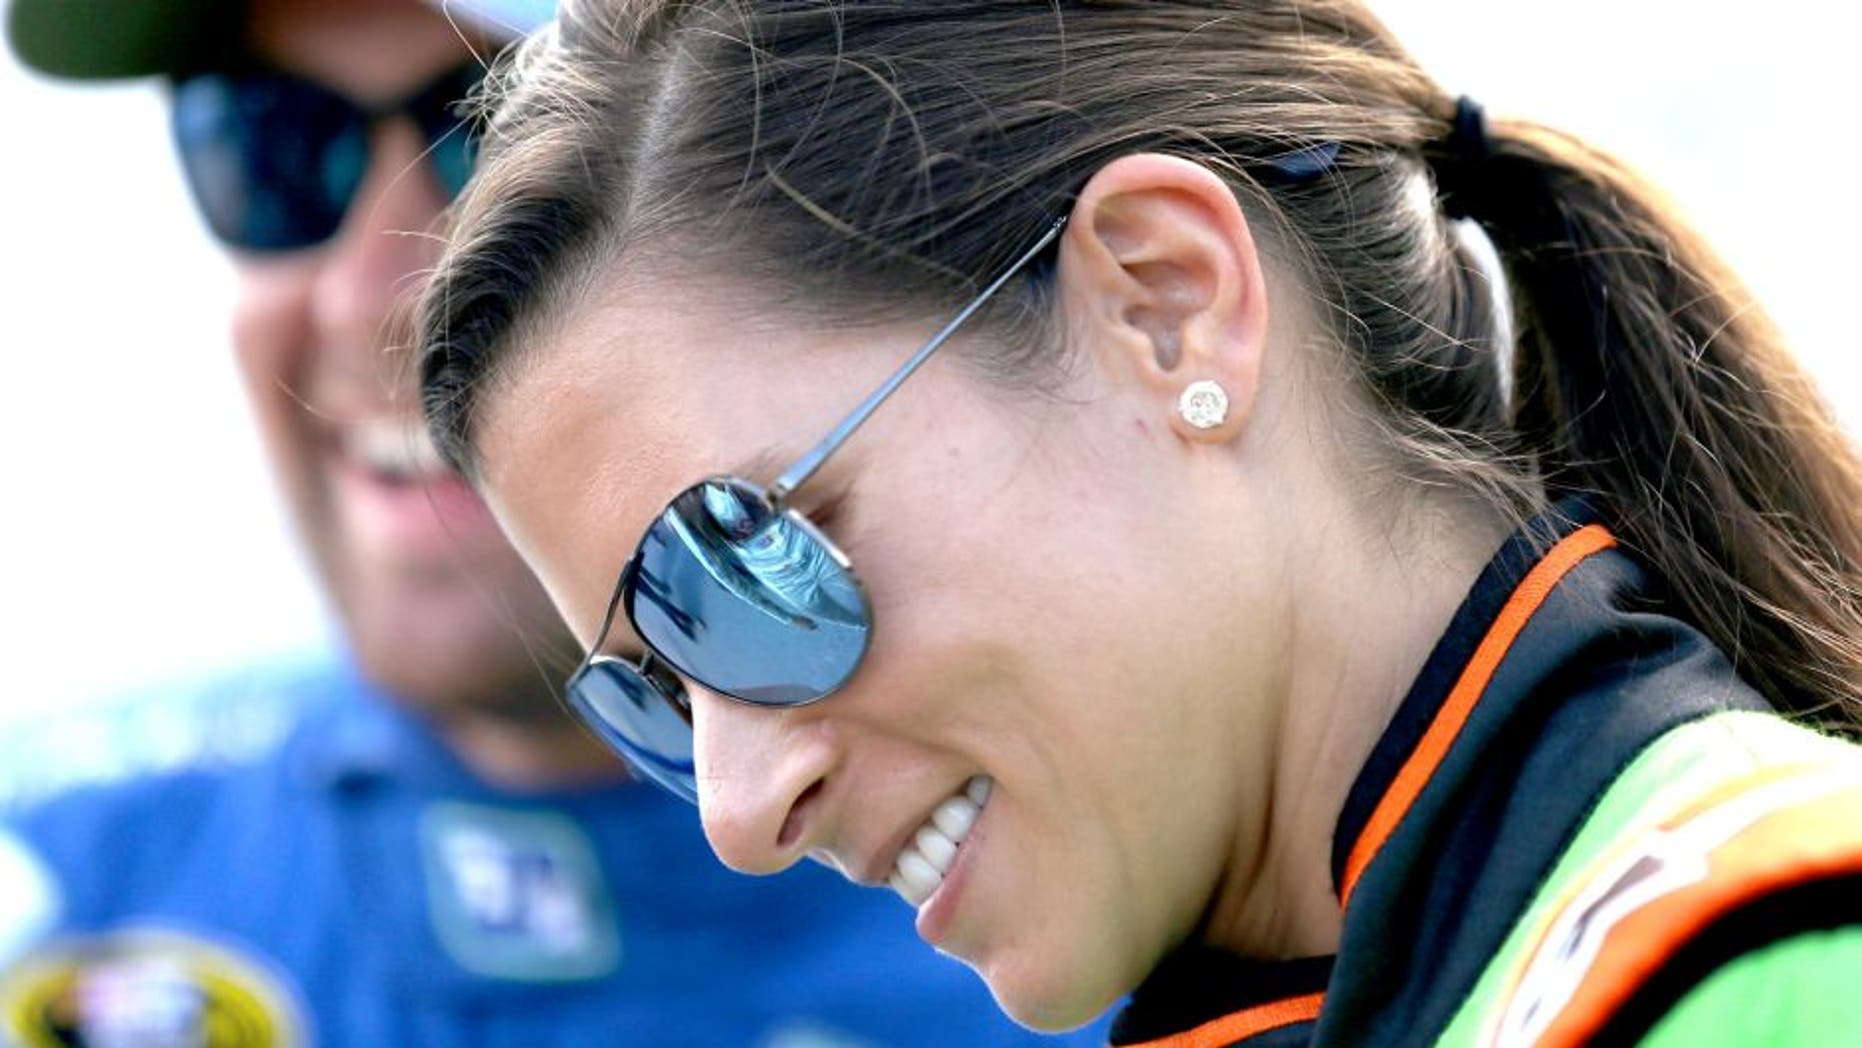 DAYTONA BEACH, FL - JULY 04: Danica Patrick, driver of the #10 GoDaddy Chevrolet, speaks with Ricky Stenhouse Jr., driver of the #17 Fifth Third Bank Ford, during qualifying for the NASCAR Sprint Cup Series Coke Zero 400 at Daytona International Speedway on July 4, 2015 in Daytona Beach, Florida. (Photo by Patrick Smith/Getty Images)